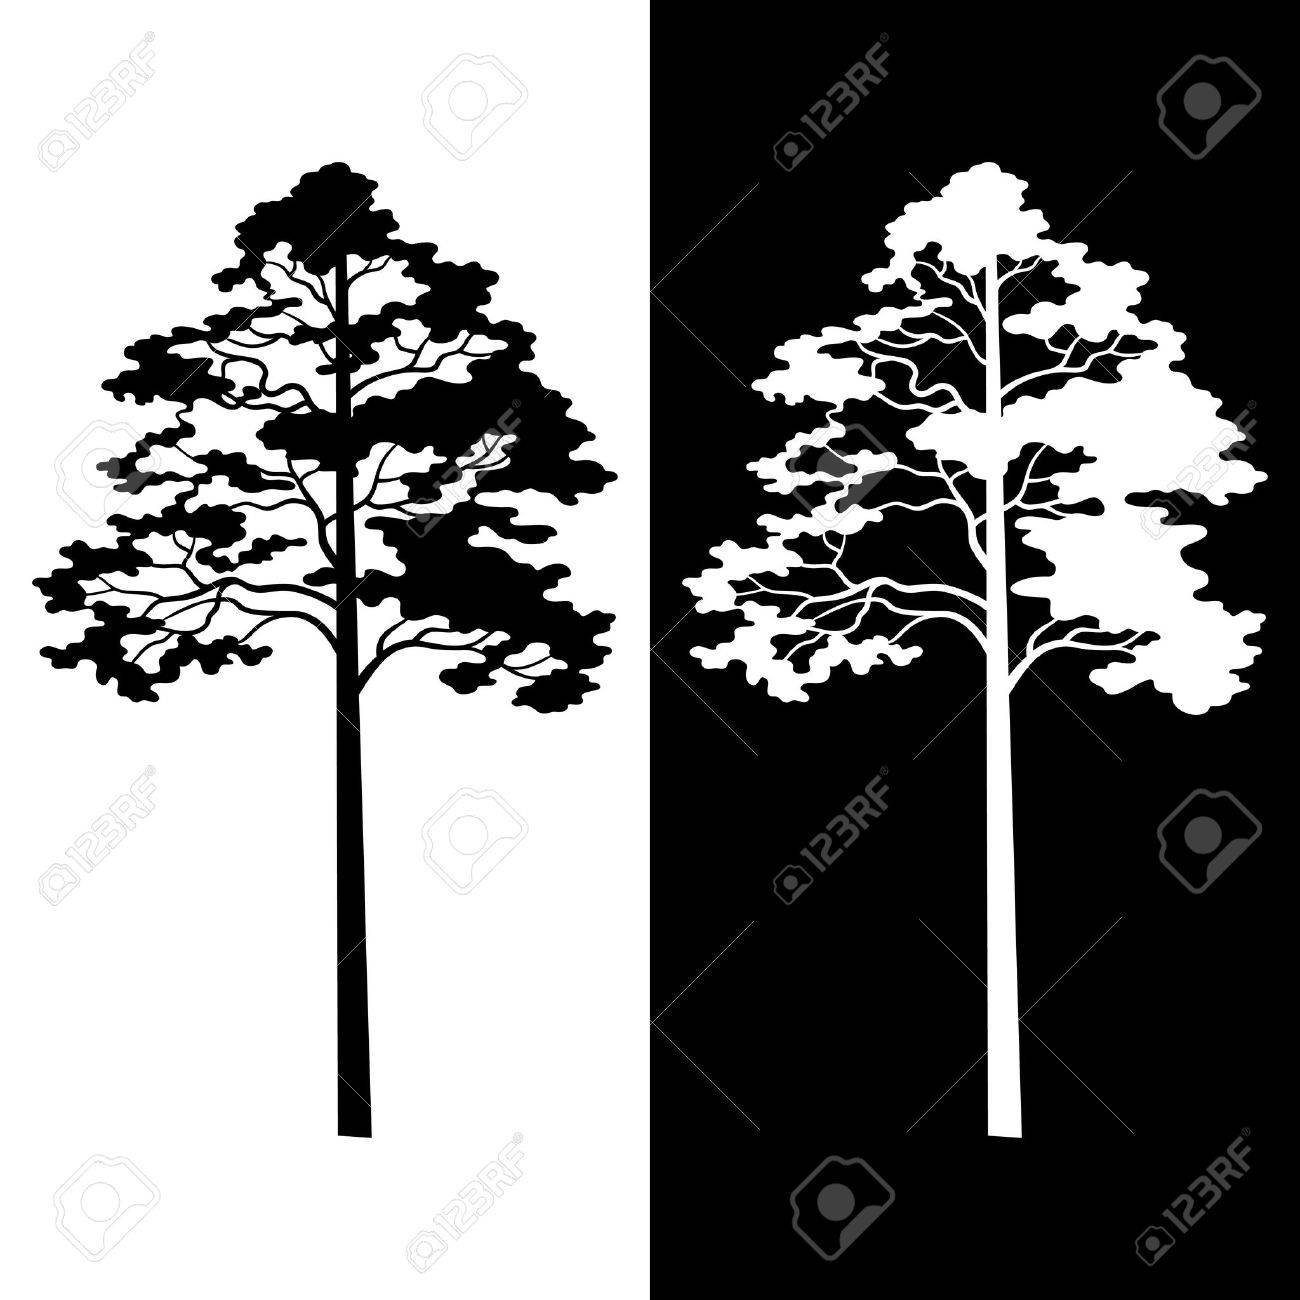 Pine Trees Black and White Silhouettes Isolated on Background. Vector - 39566686